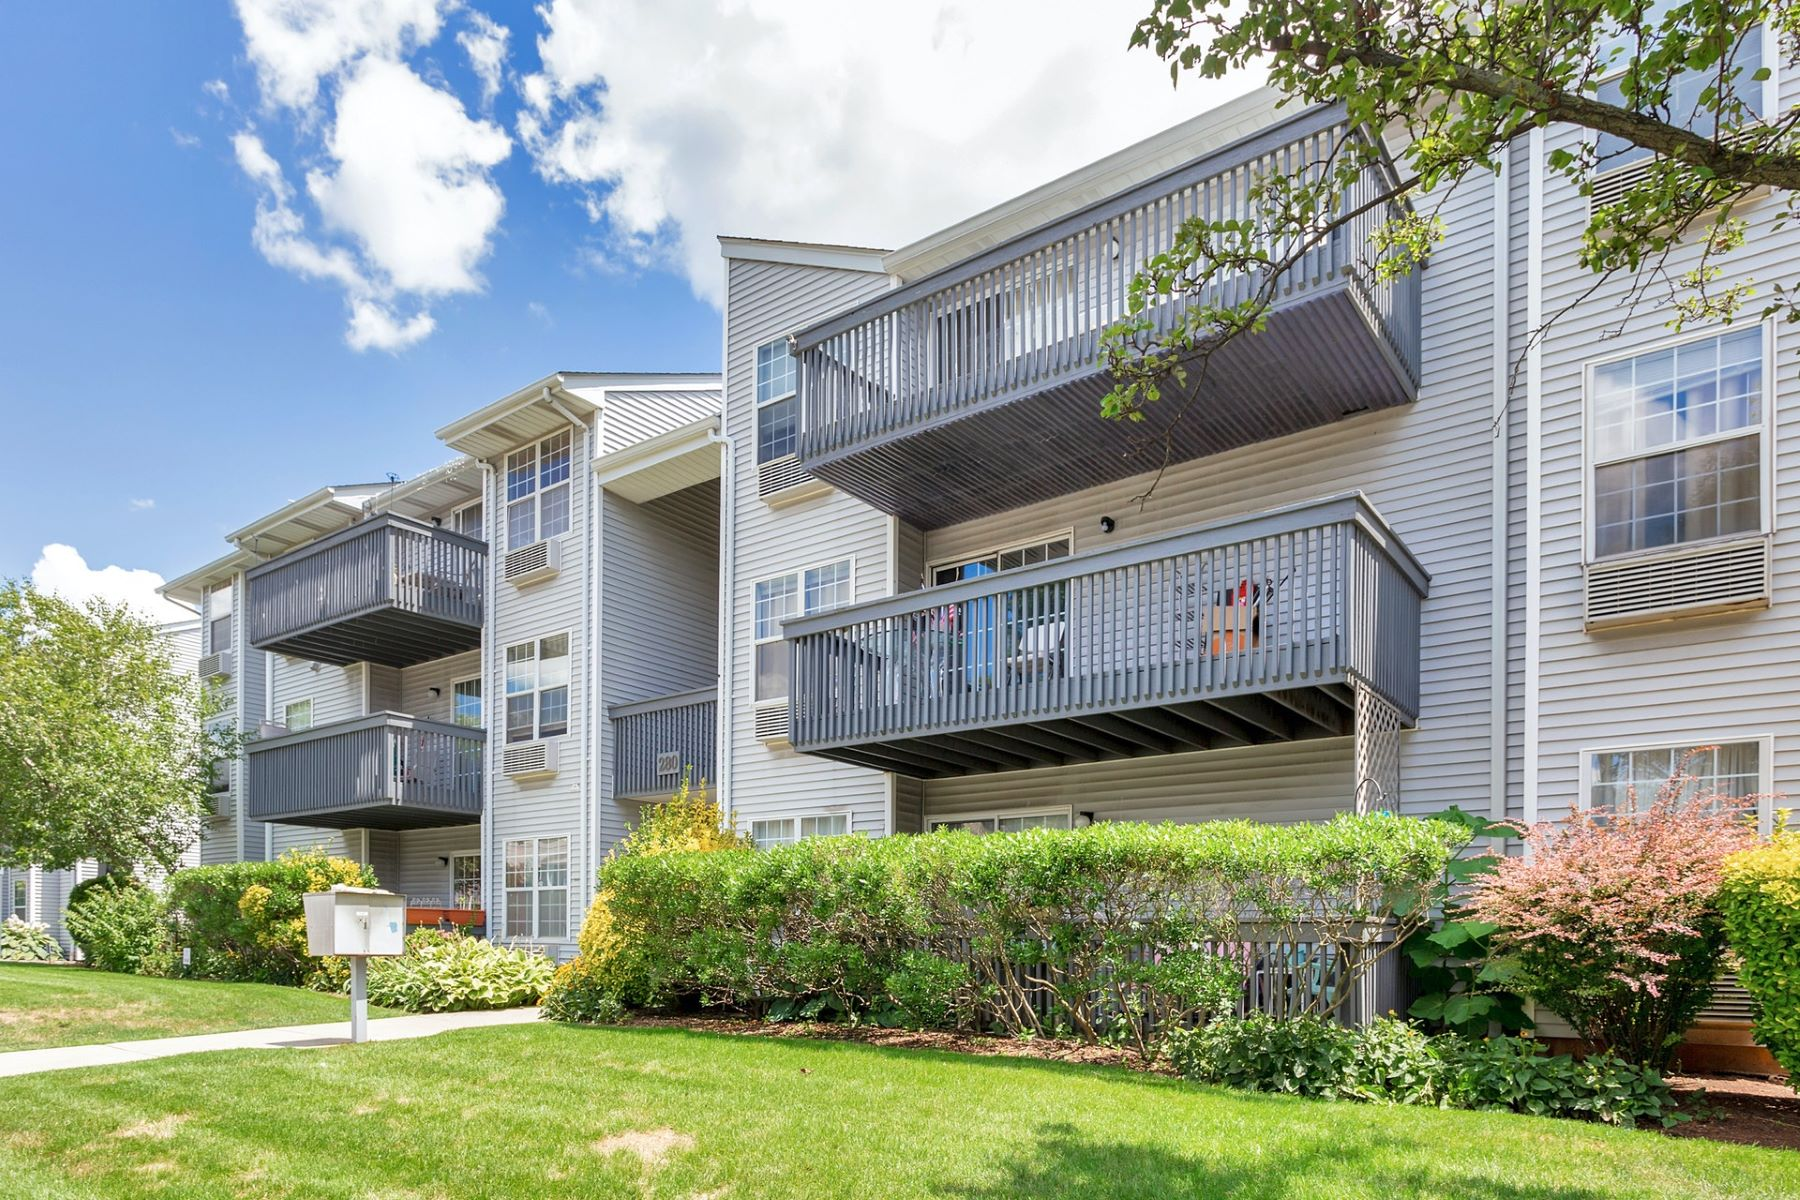 Condominiums for Sale at LOVELY SOUTH POINT COMPLEX IS THE SETTING FOR A UNIQUE UNIT 280 Kipp St. #3B-C, Hackensack, New Jersey 07601 United States